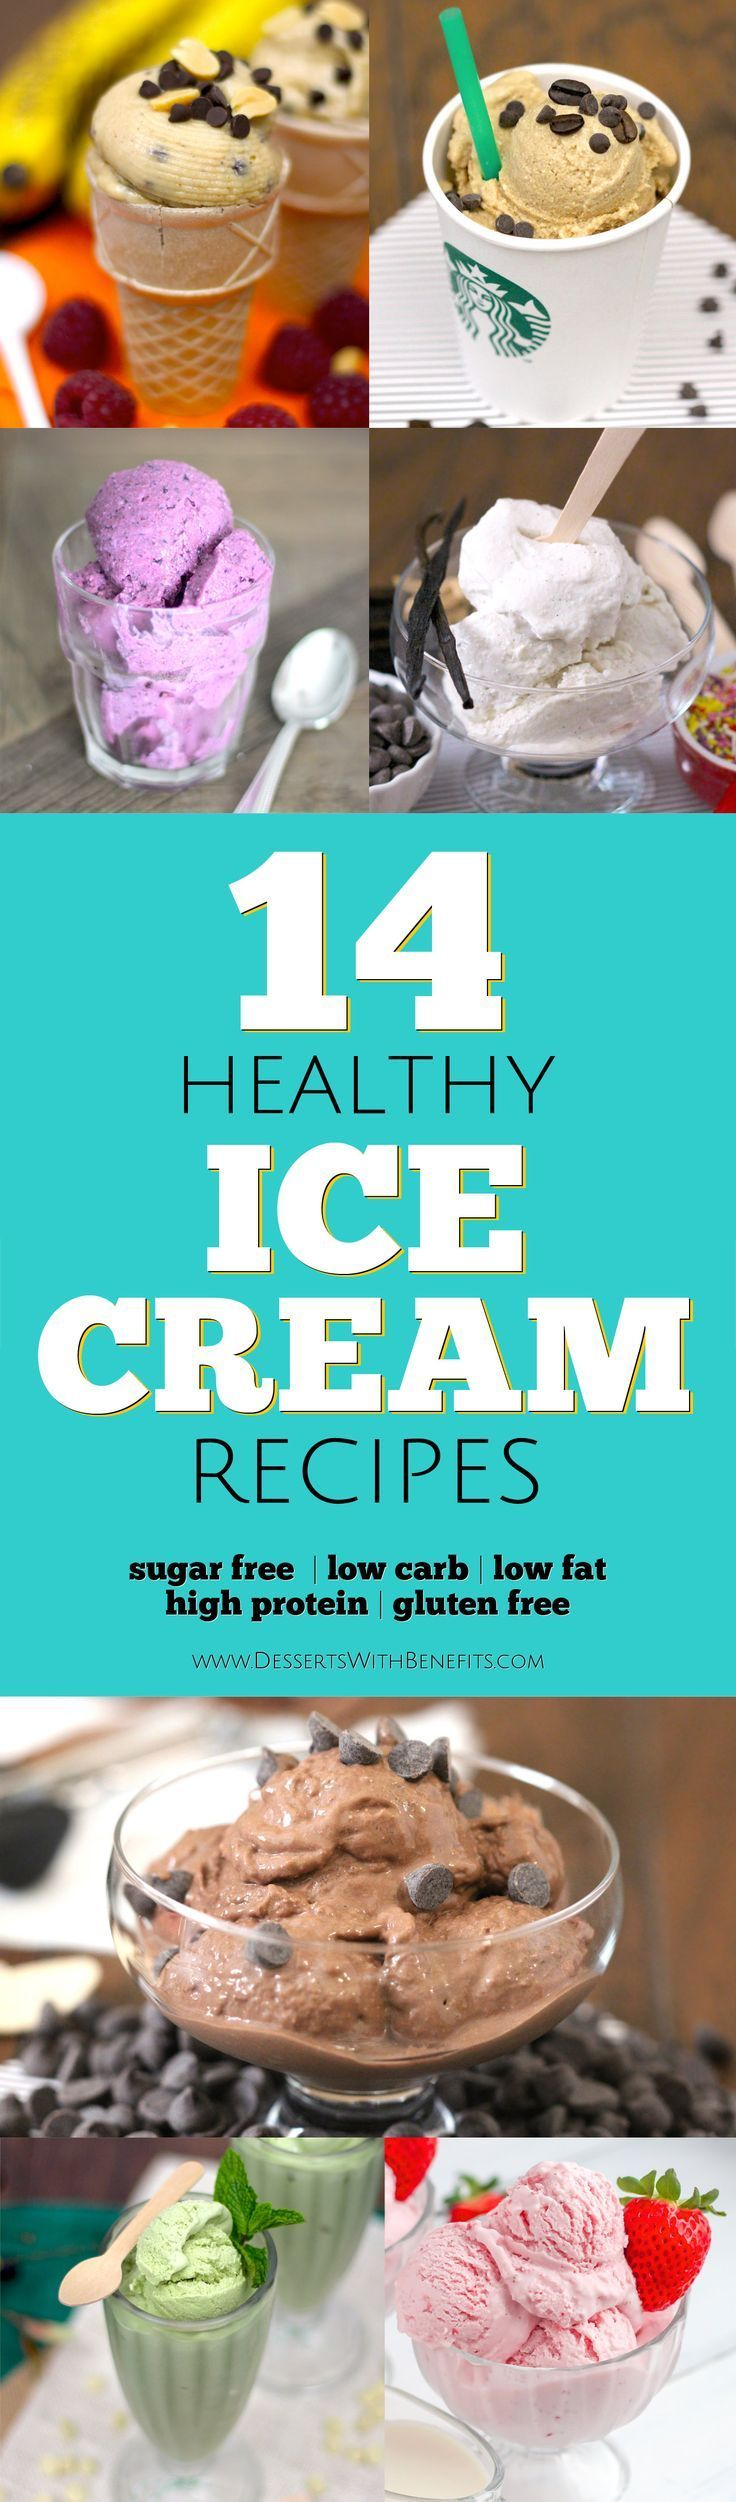 Beat the heat with these 14 HEALTHY Ice Cream recipes!  From vanilla and chocolate to red velvet cake and matcha green tea, you'll be sure to find the flavor for YOU.  These homemade ice creams are so sweet and creamy, it's hard to believe they're totally guilt-free.  These recipes are refined sugar free, low carb, low fat, and high protein, with some vegan options in there too!